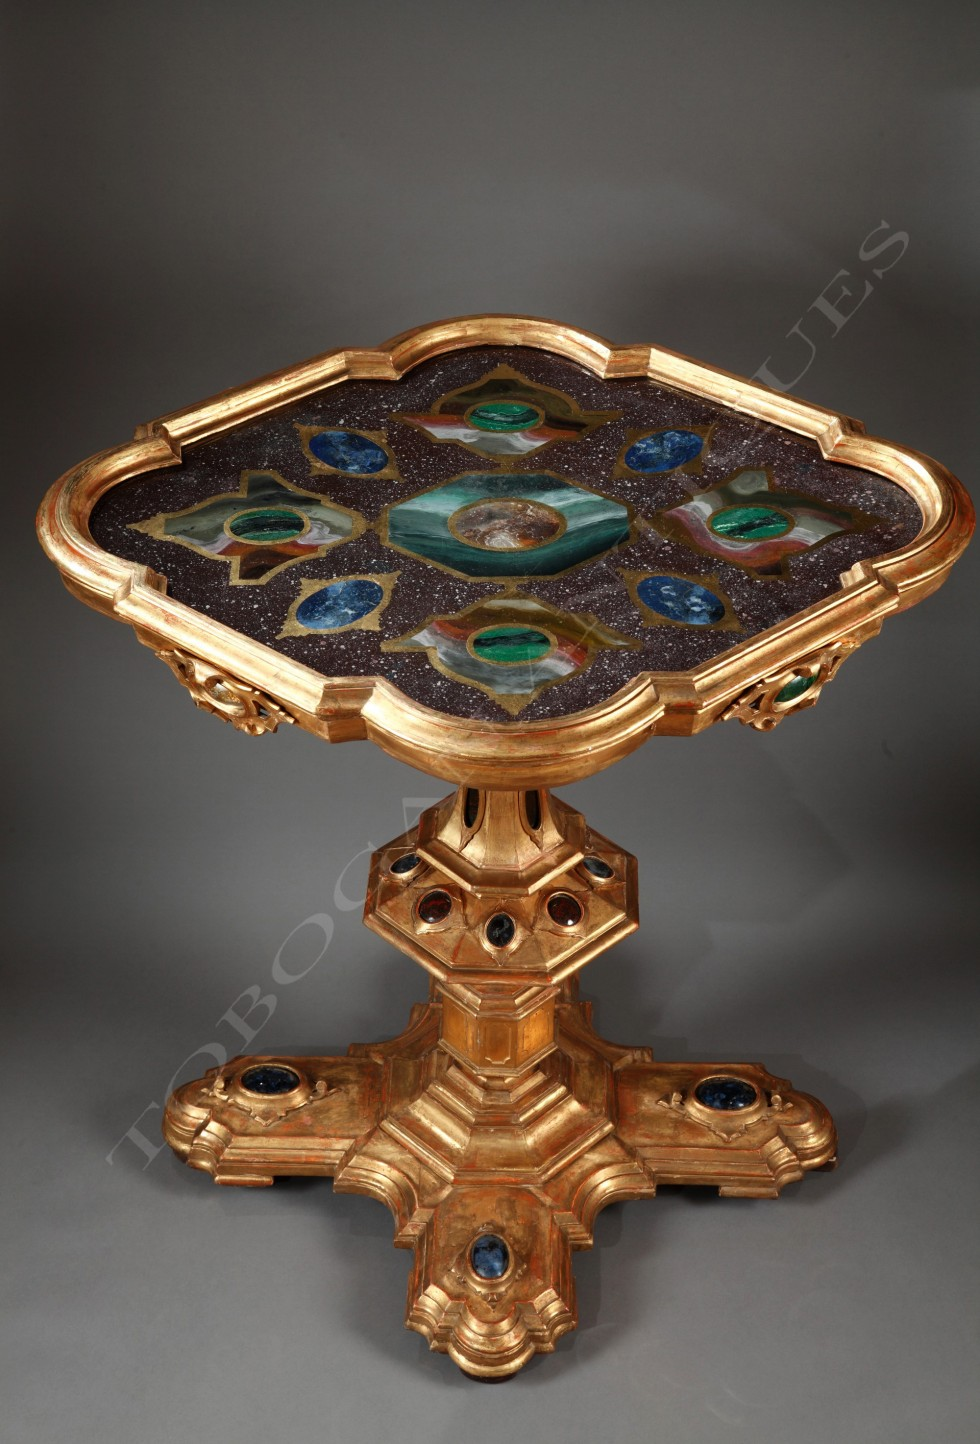 A Rare Venetian <br/> Center Table